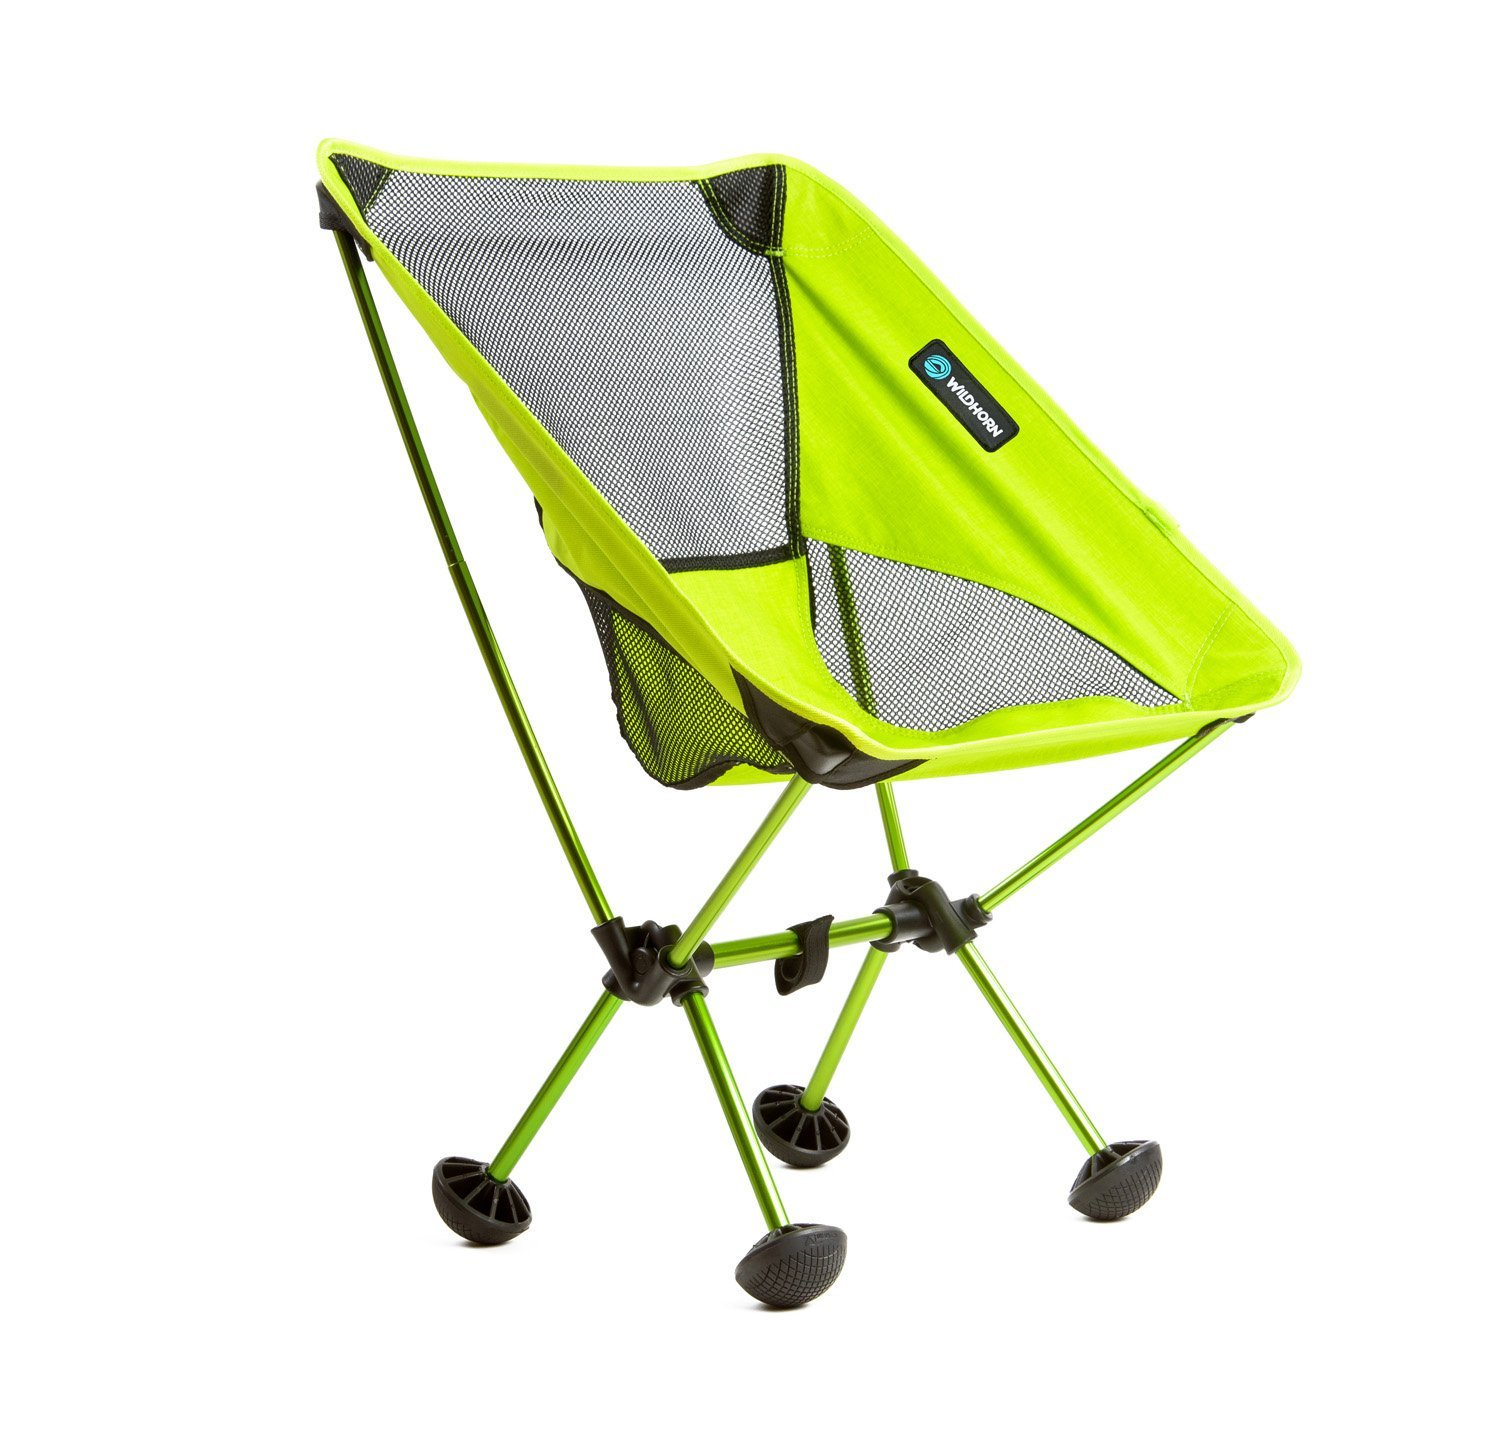 Wildhorn Outfitters TerraLite Portable Folding Camping & Beach Chair, Neon Green